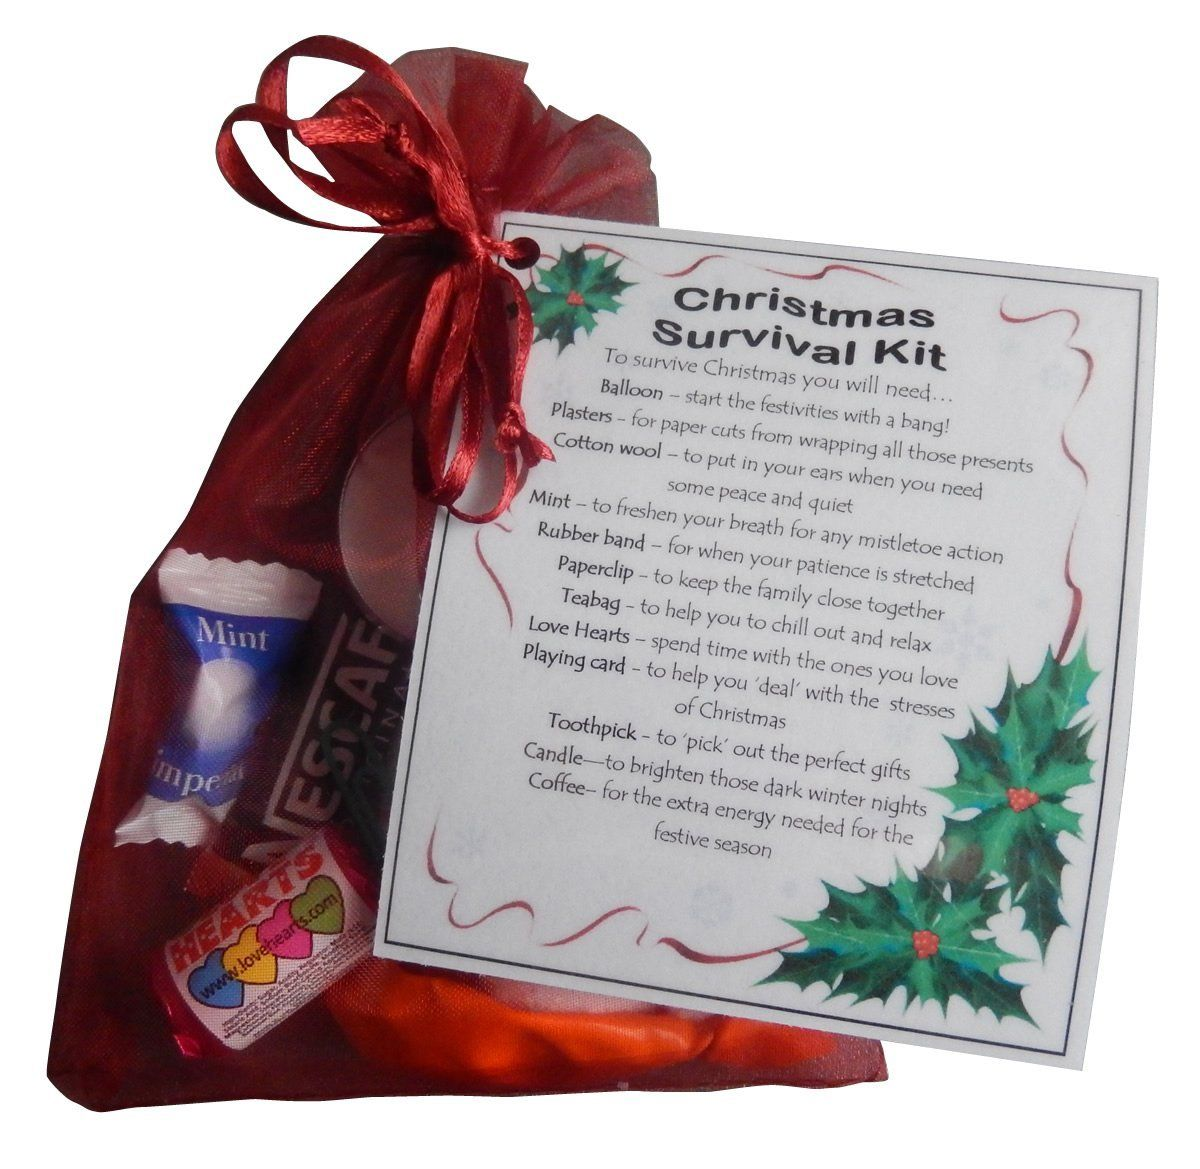 Christmas Survival Kit Great Stocking Filler Or Secret Santa Gift Amazon Co Uk Kitchen Home Smile Gift Uk Christmas Gifts Secret Santa Gifts